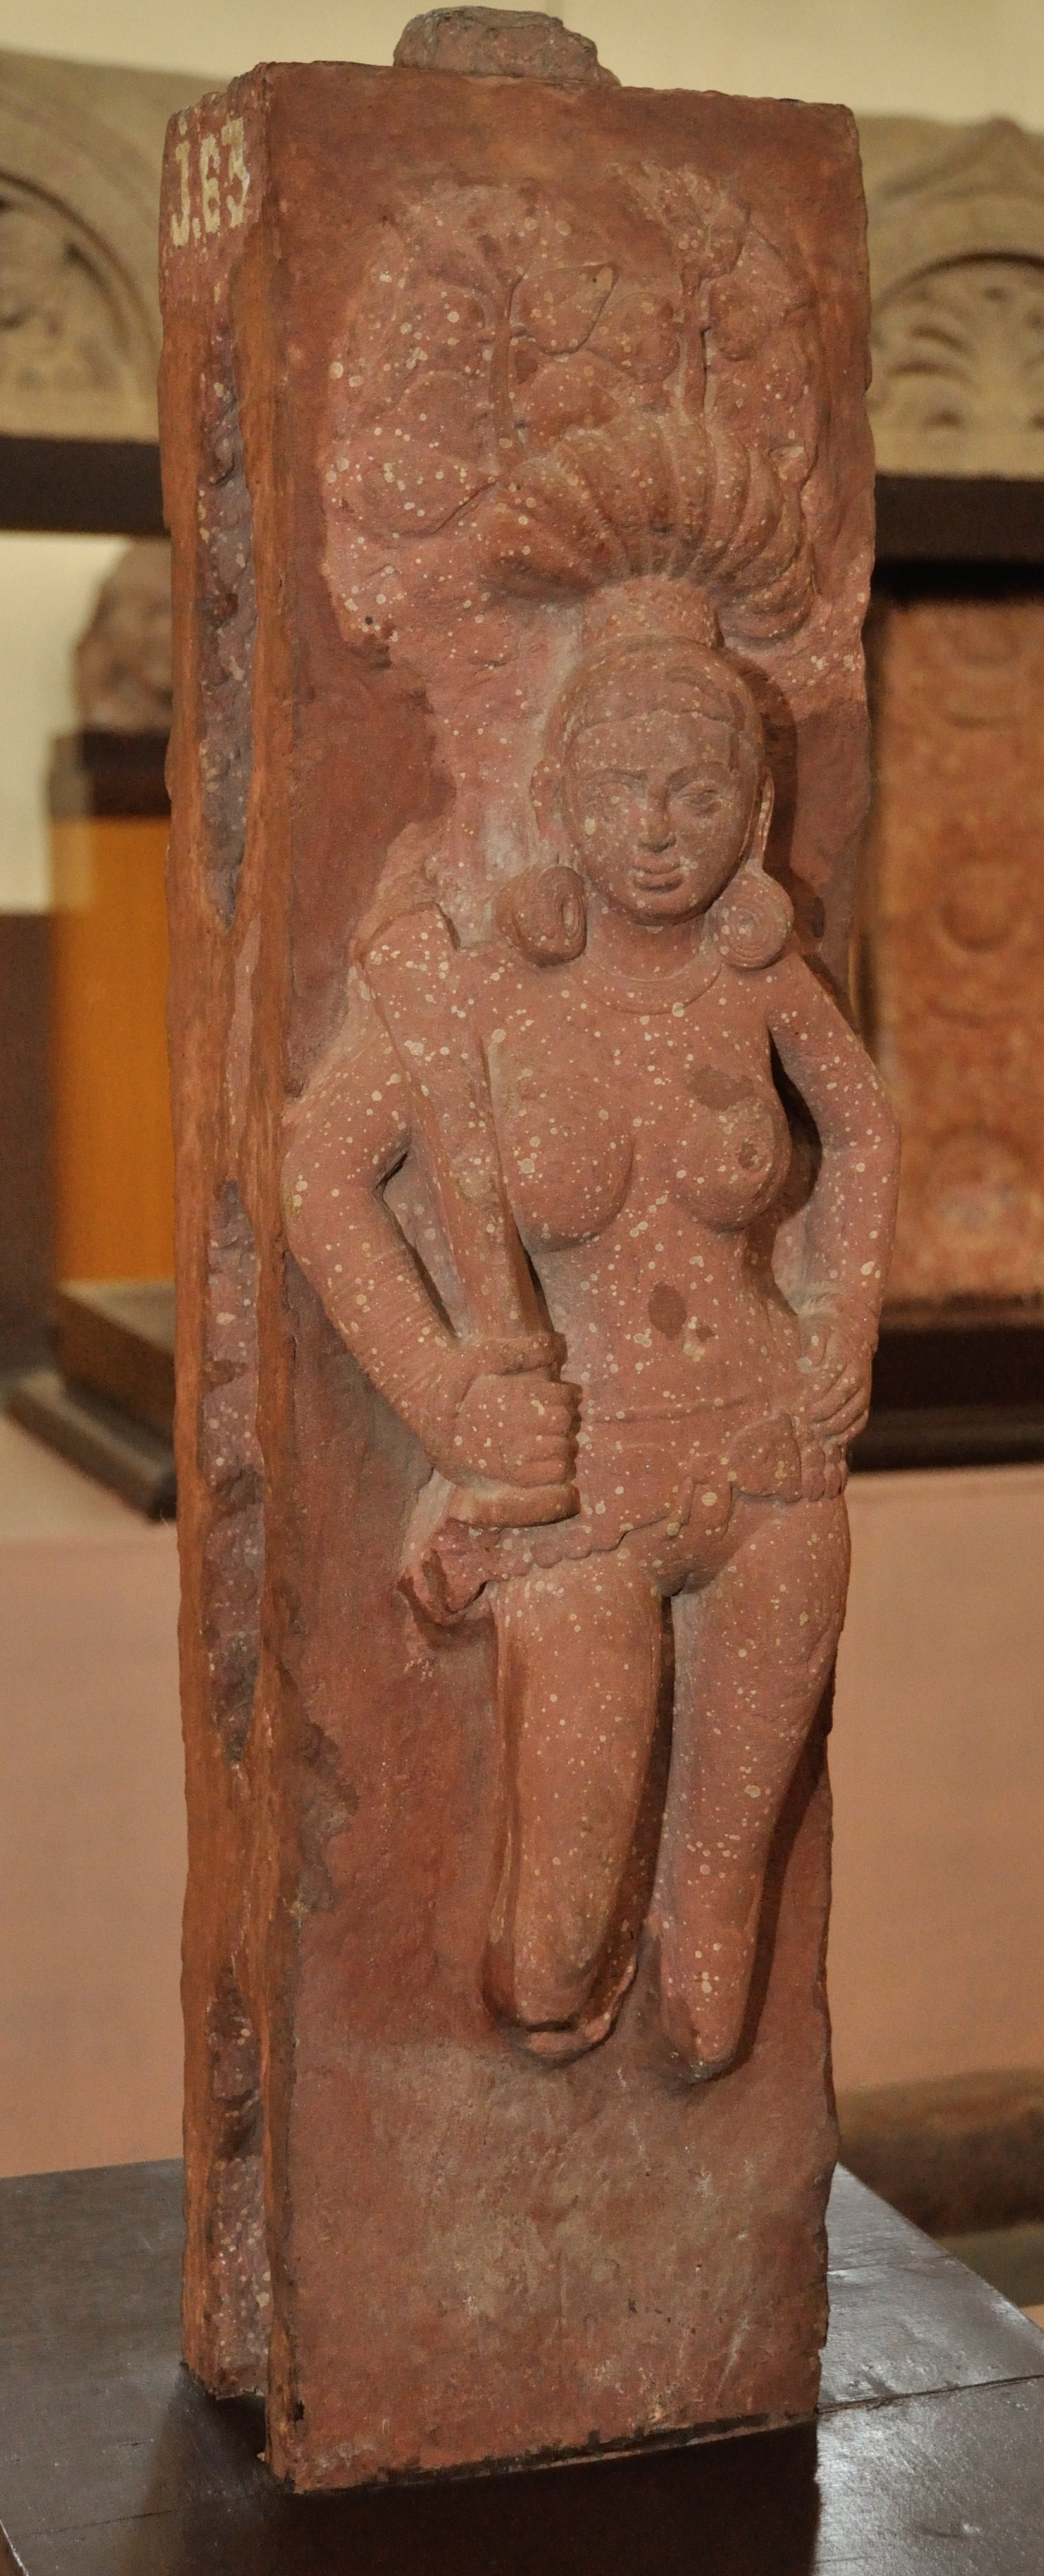 Woman_with_Sword_Under_Pipal_Tree_-_Circa_1st_Century_CE_-_Lakshmangarh_Mound_-_ACCN_00-J-63_-...jpg